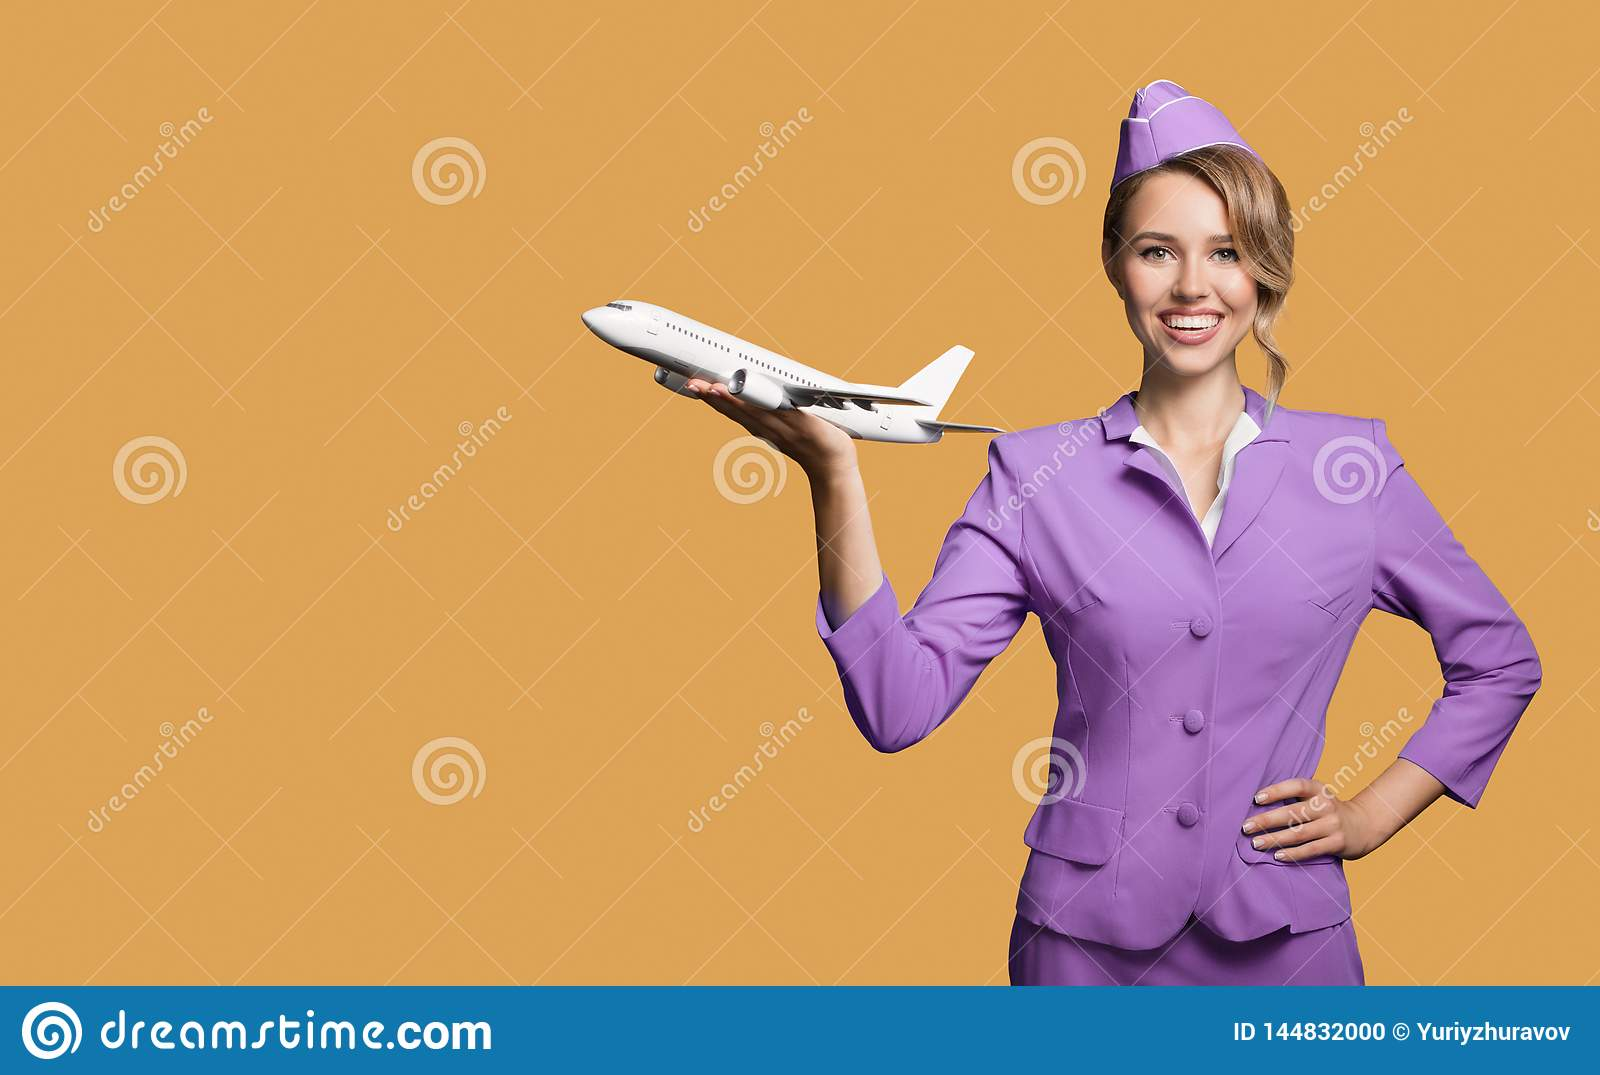 stewardess holding airplane in hand